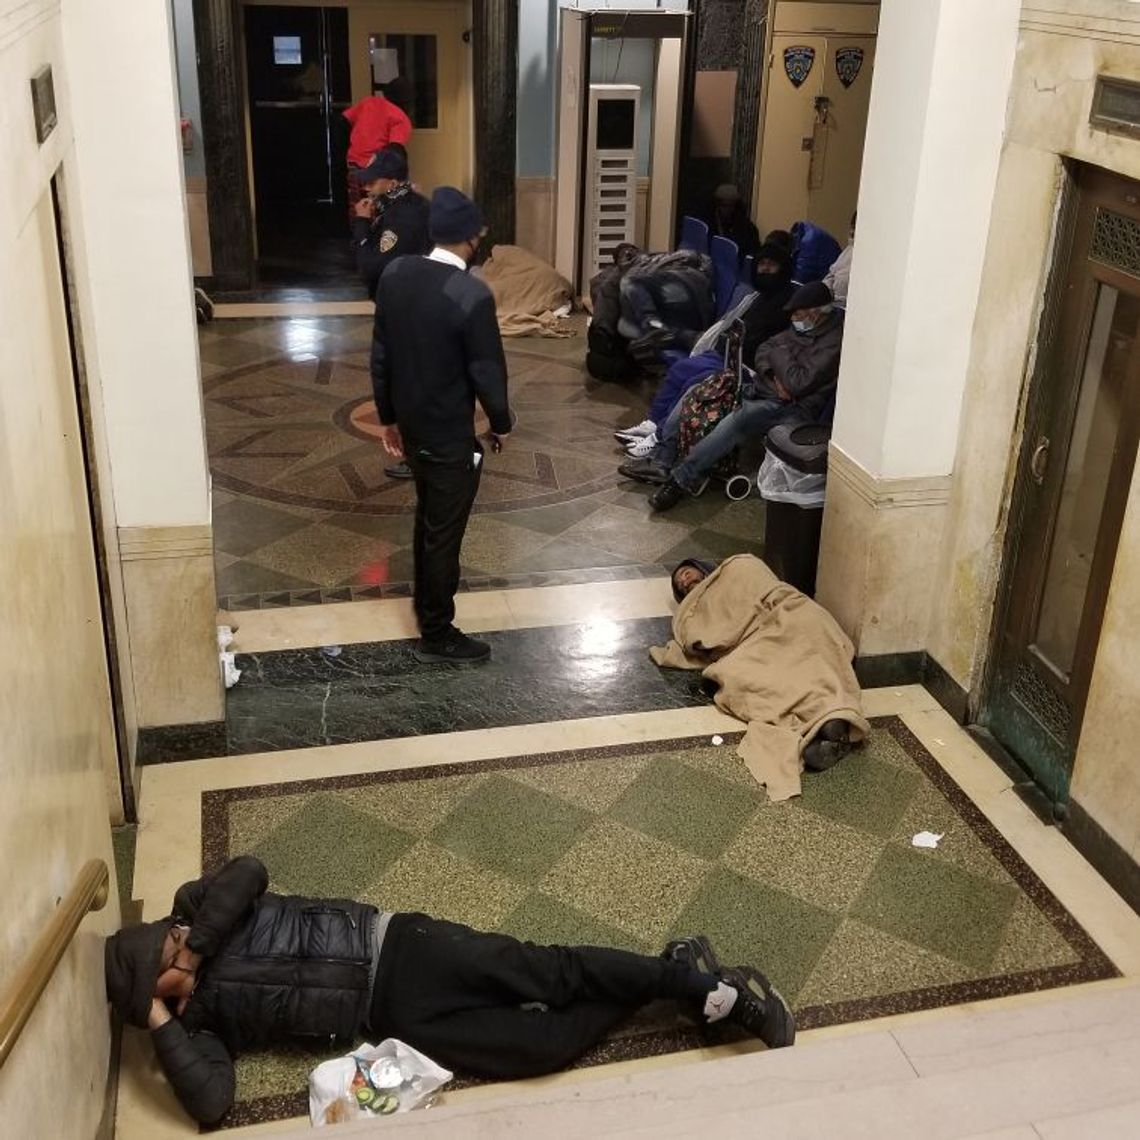 A recent overnight scene from the 30th Street Men's shelter near Bellevue Hospital.